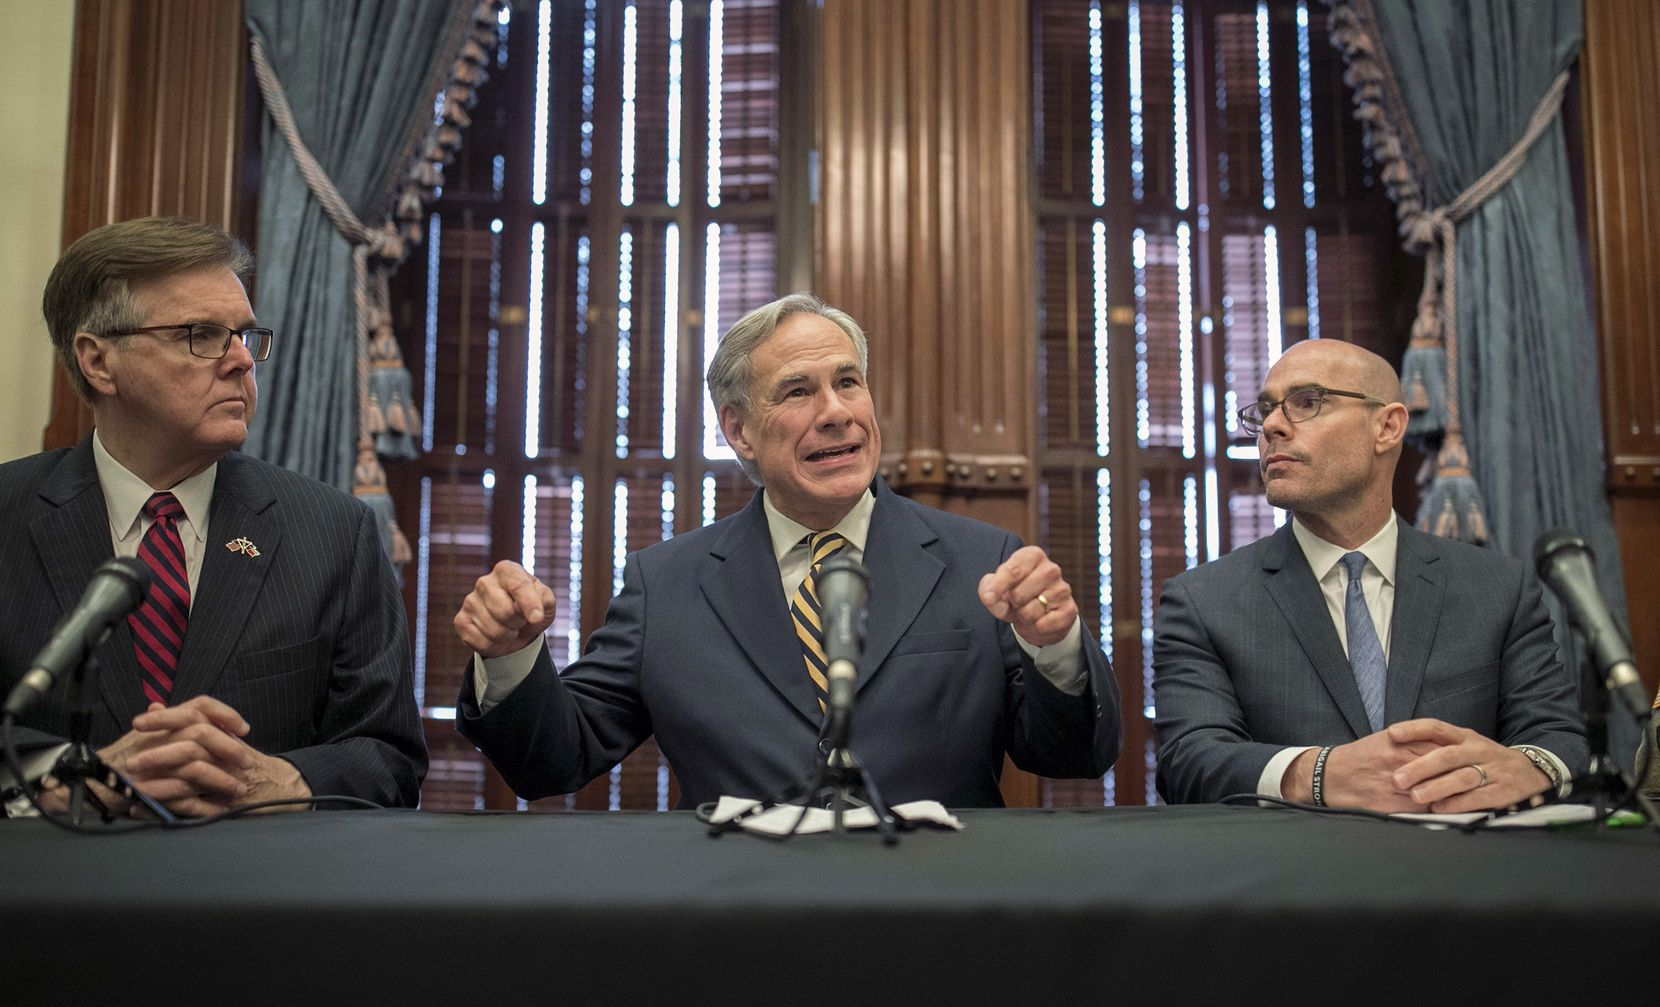 Gov. Greg Abbott announces a deployment of National Guard troops to the Texas-Mexico border at a news conference at the Capitol, Friday June 21, 2019 in Austin, Texas. Listening are Lt. Gov. Dan Patrick, left, and House Speaker Dennis Bonnen.